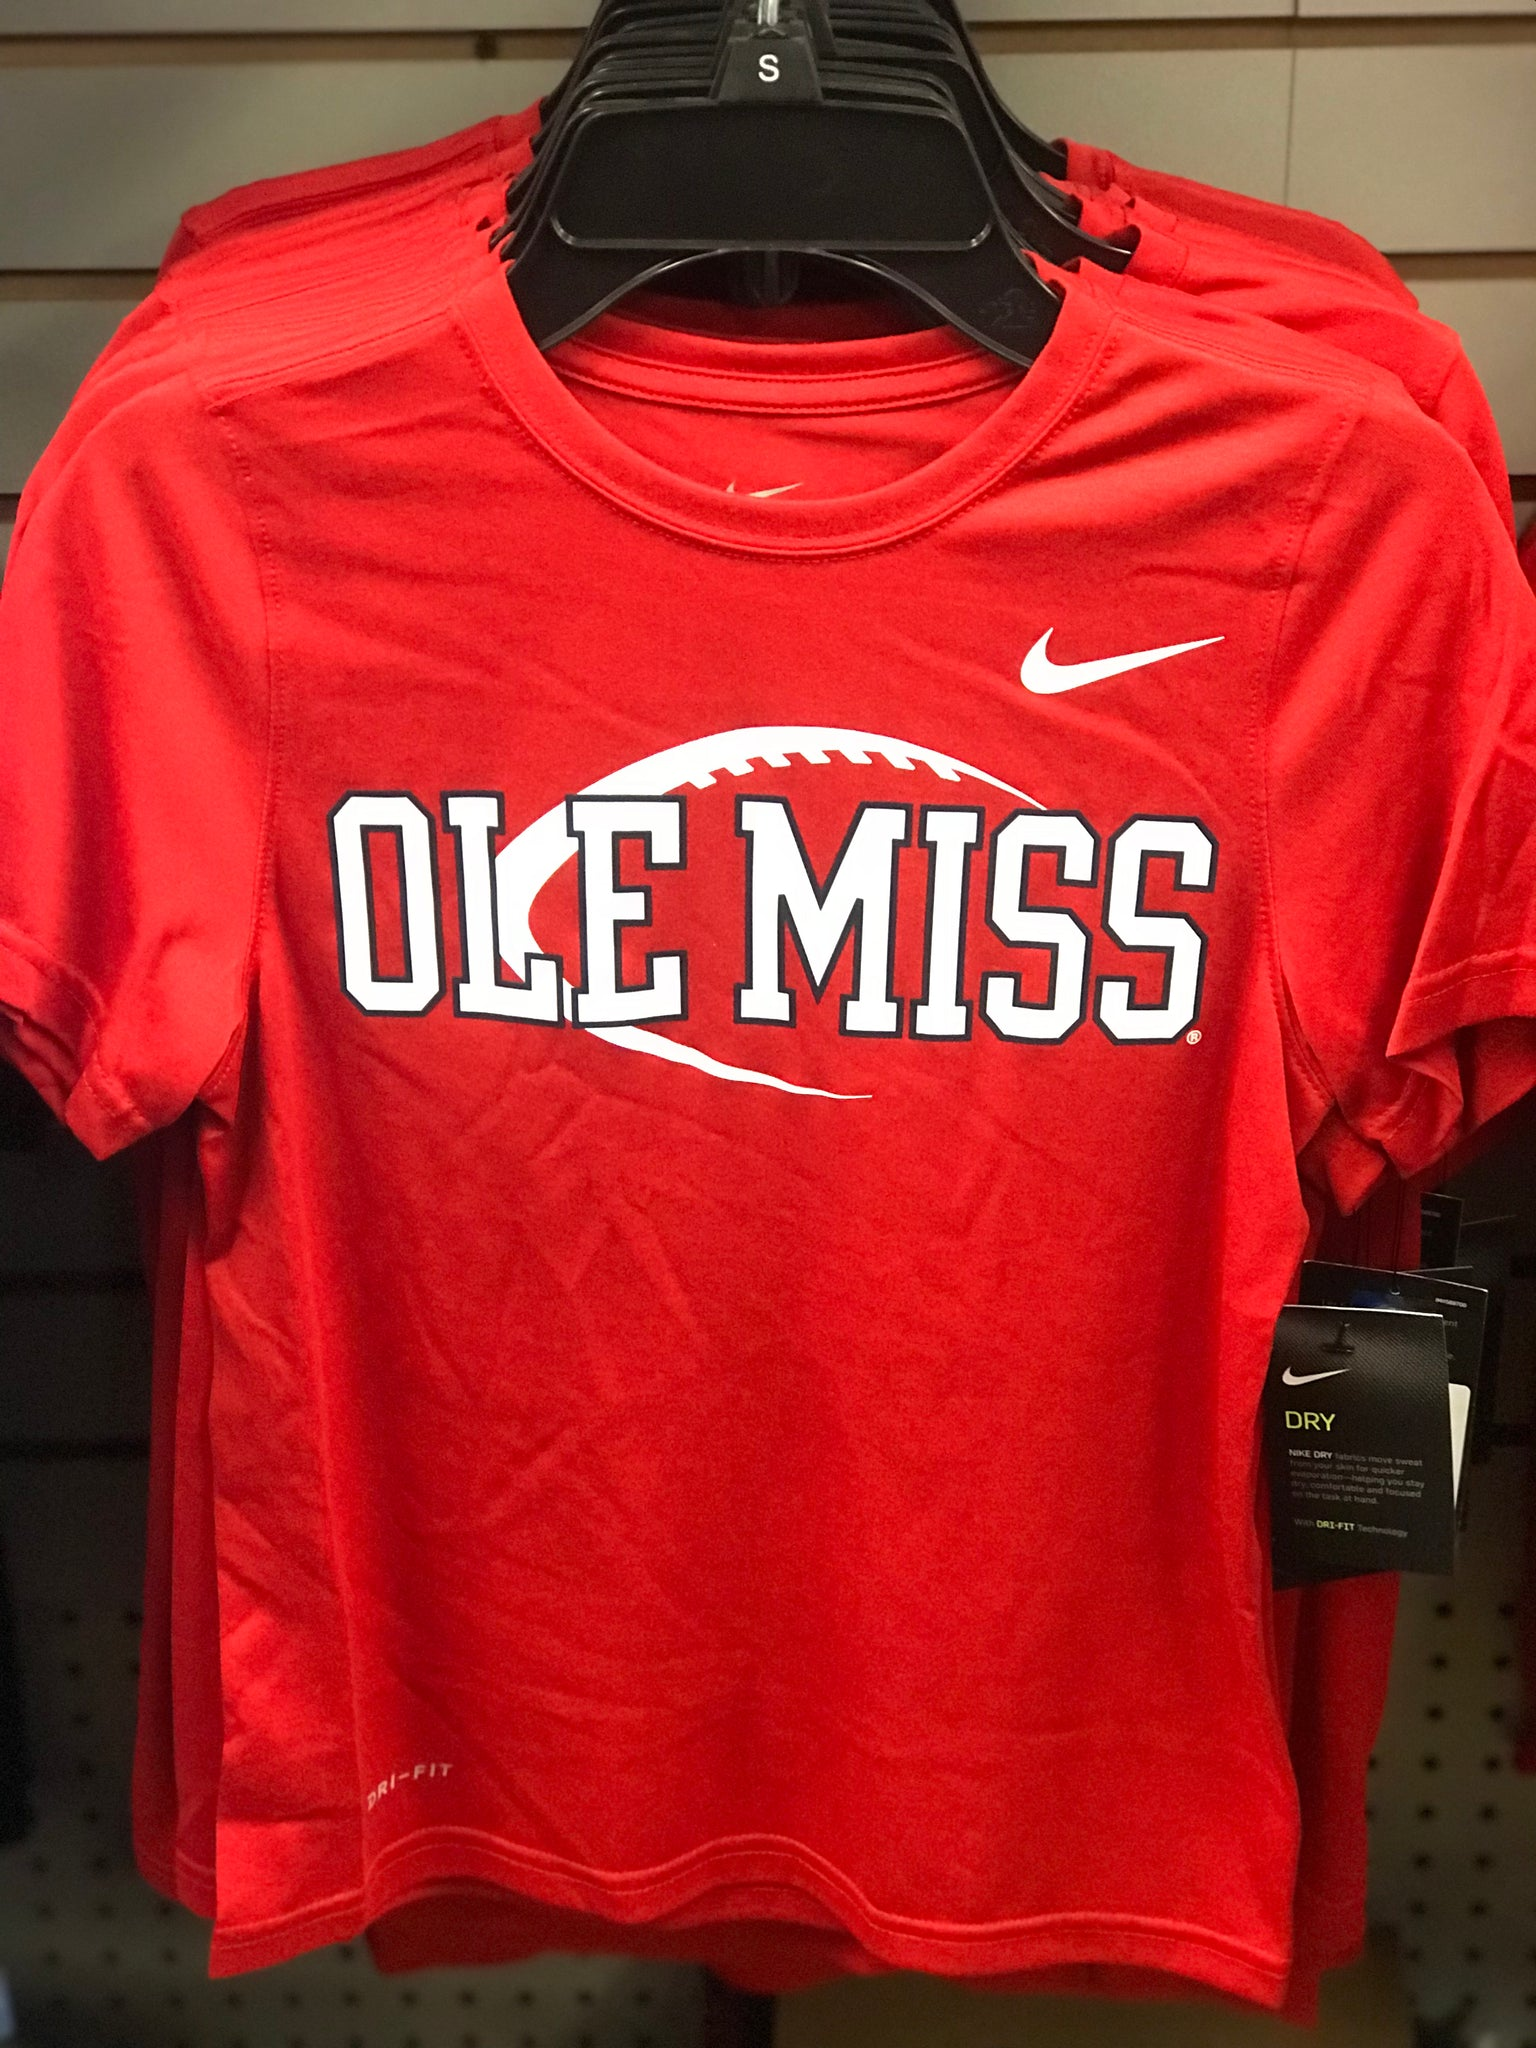 Ole Miss Football Nike Shirt